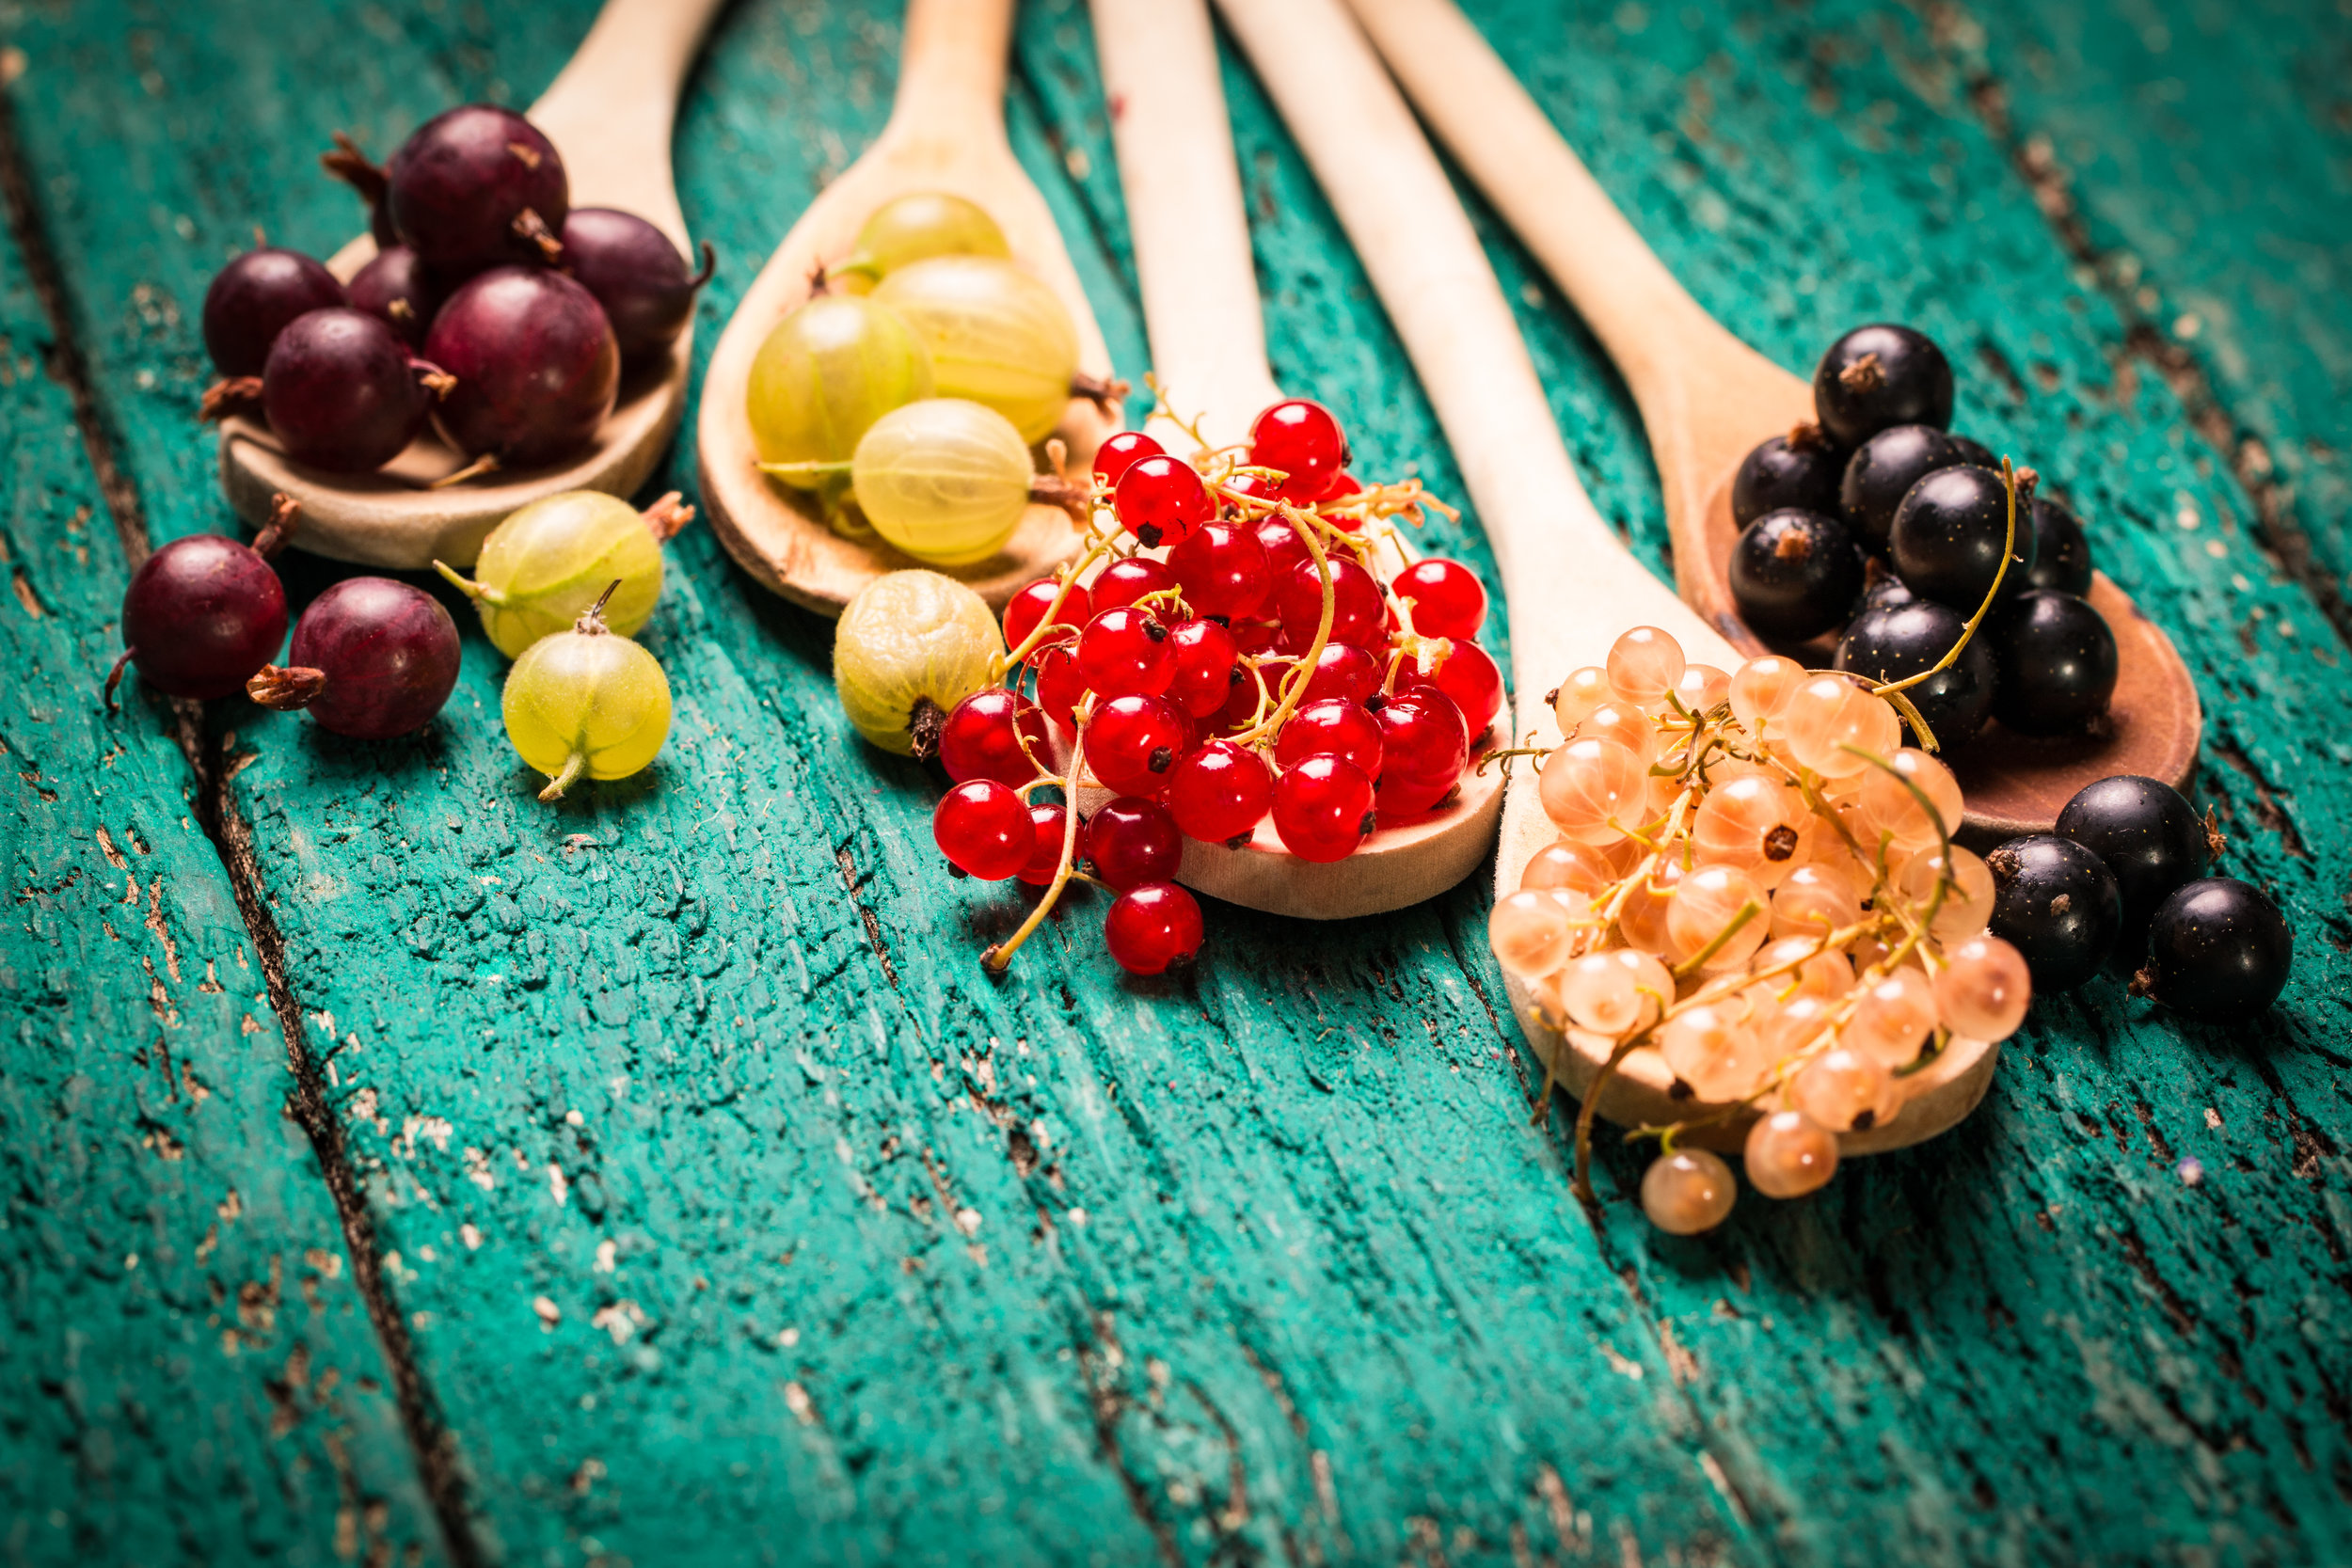 Fresh-summer-berries,wooden-background,healthy-food.-490890916_5472x3648.jpeg